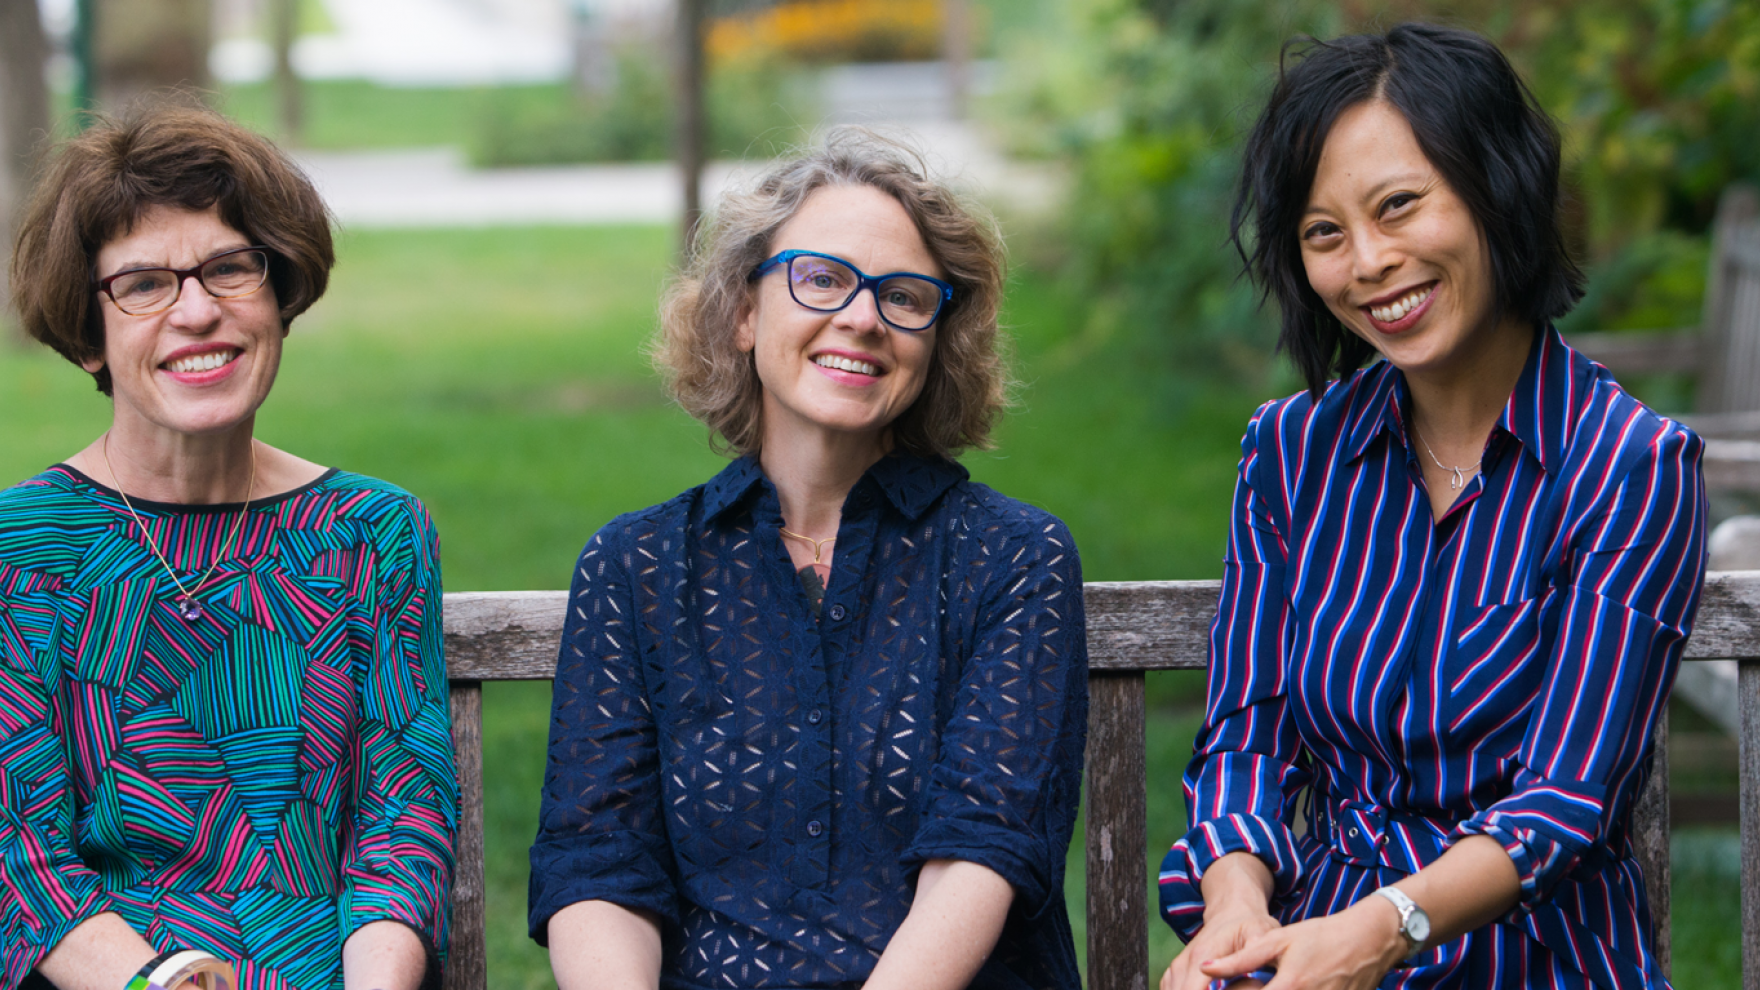 New faculty members Josephine McDonagh, Ellen MacKay, and Sianne Ngai